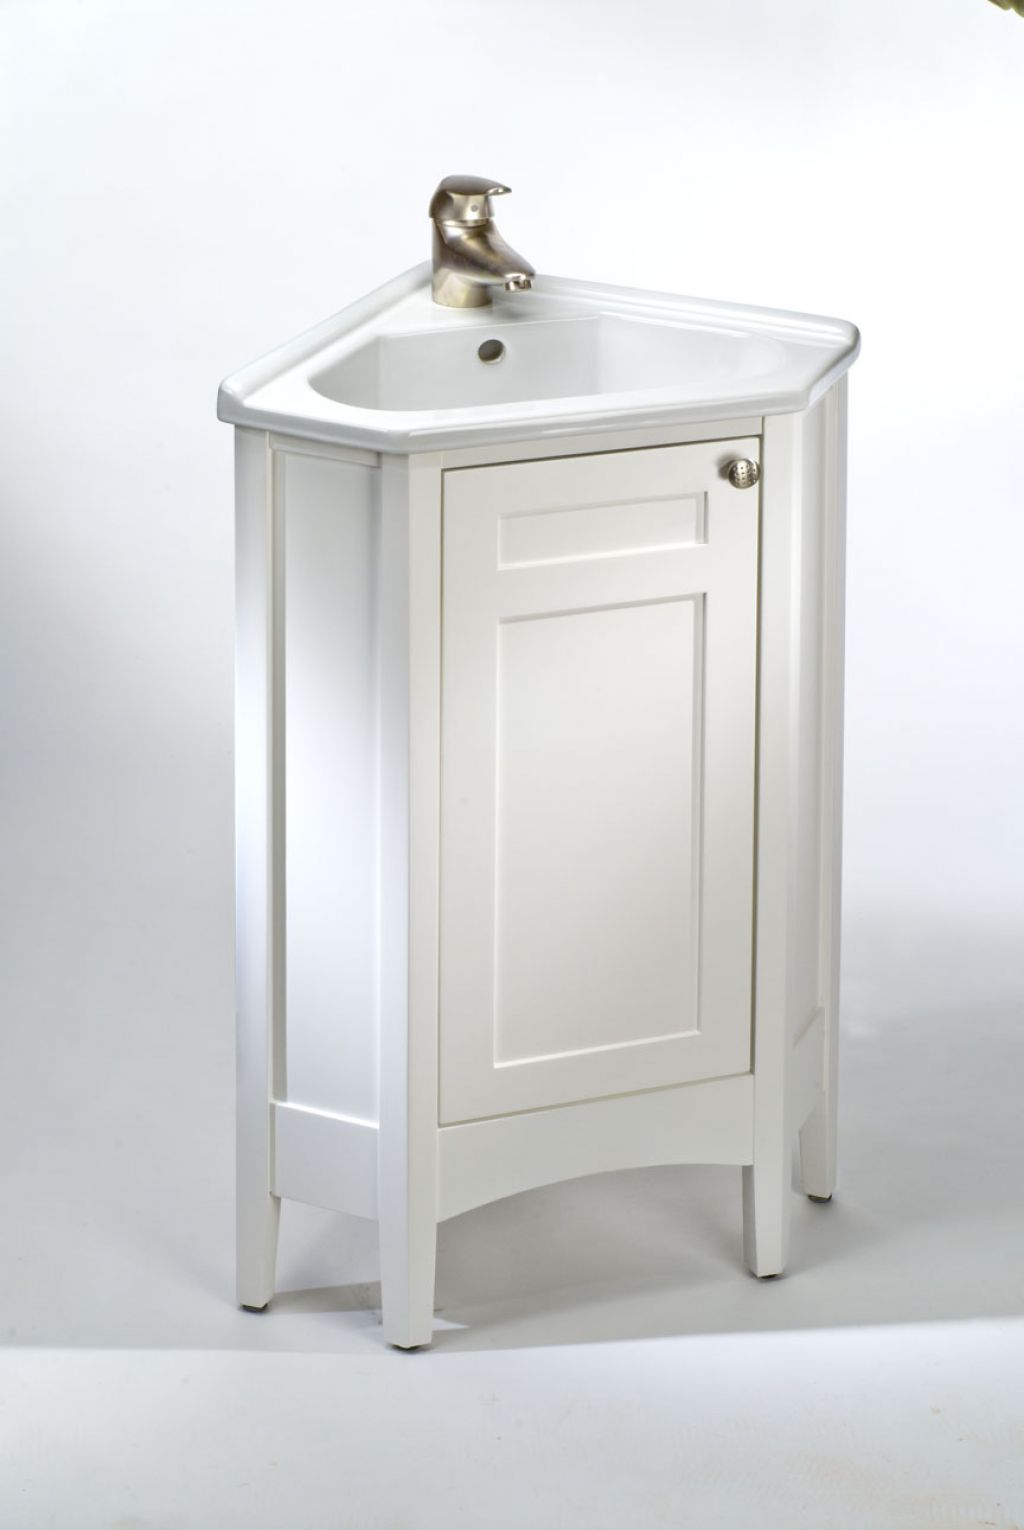 small bathroom corner vanity luxury small sink and vanity 7 furniture bathroom with white wooden DQUBEMX